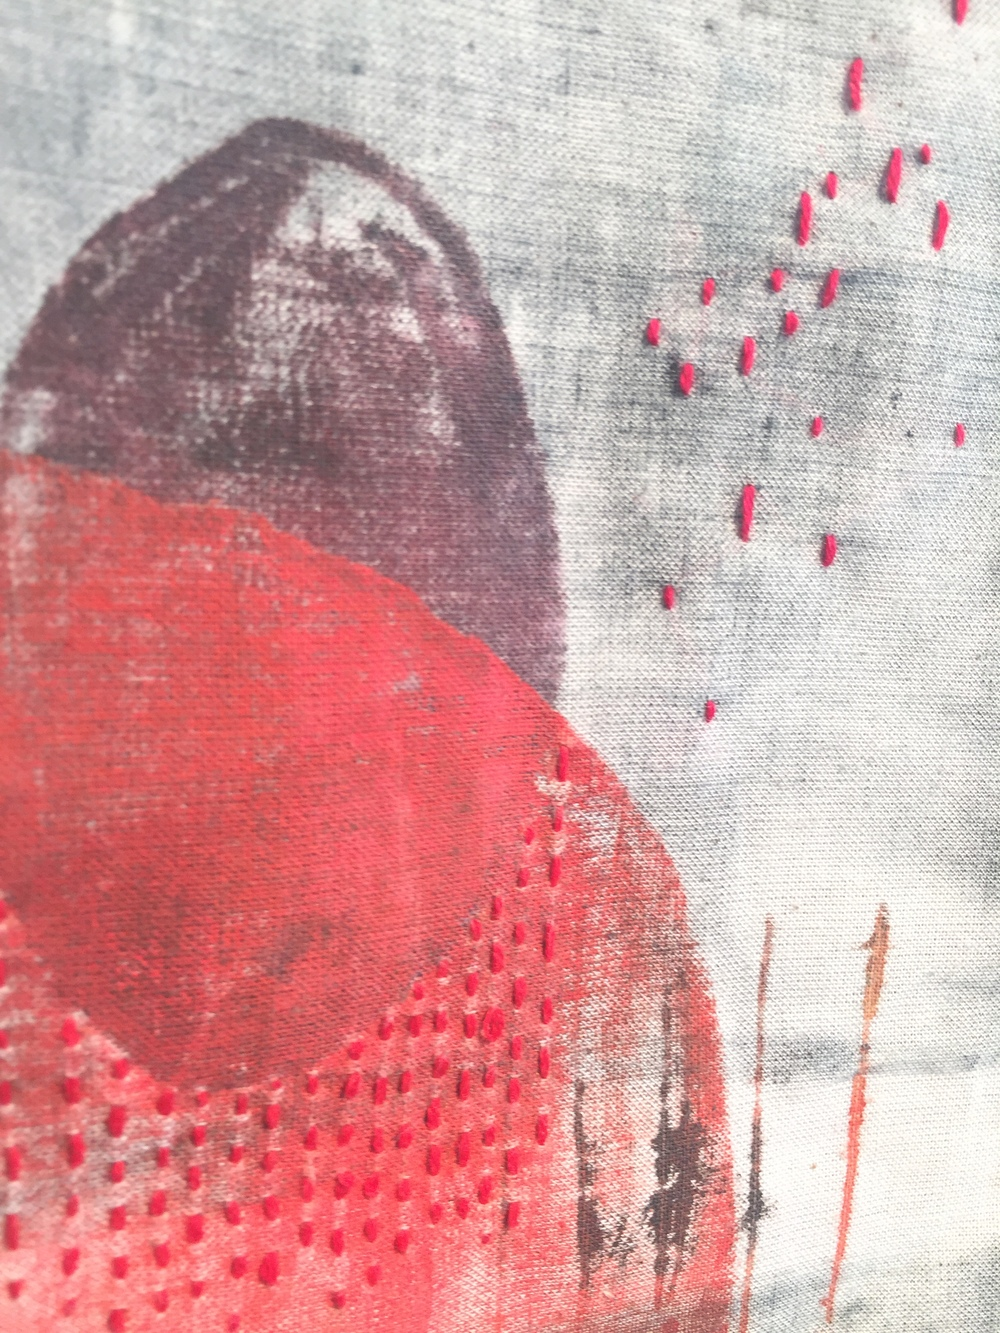 Eclipse, 2016. Monoprint on fabric, thread.